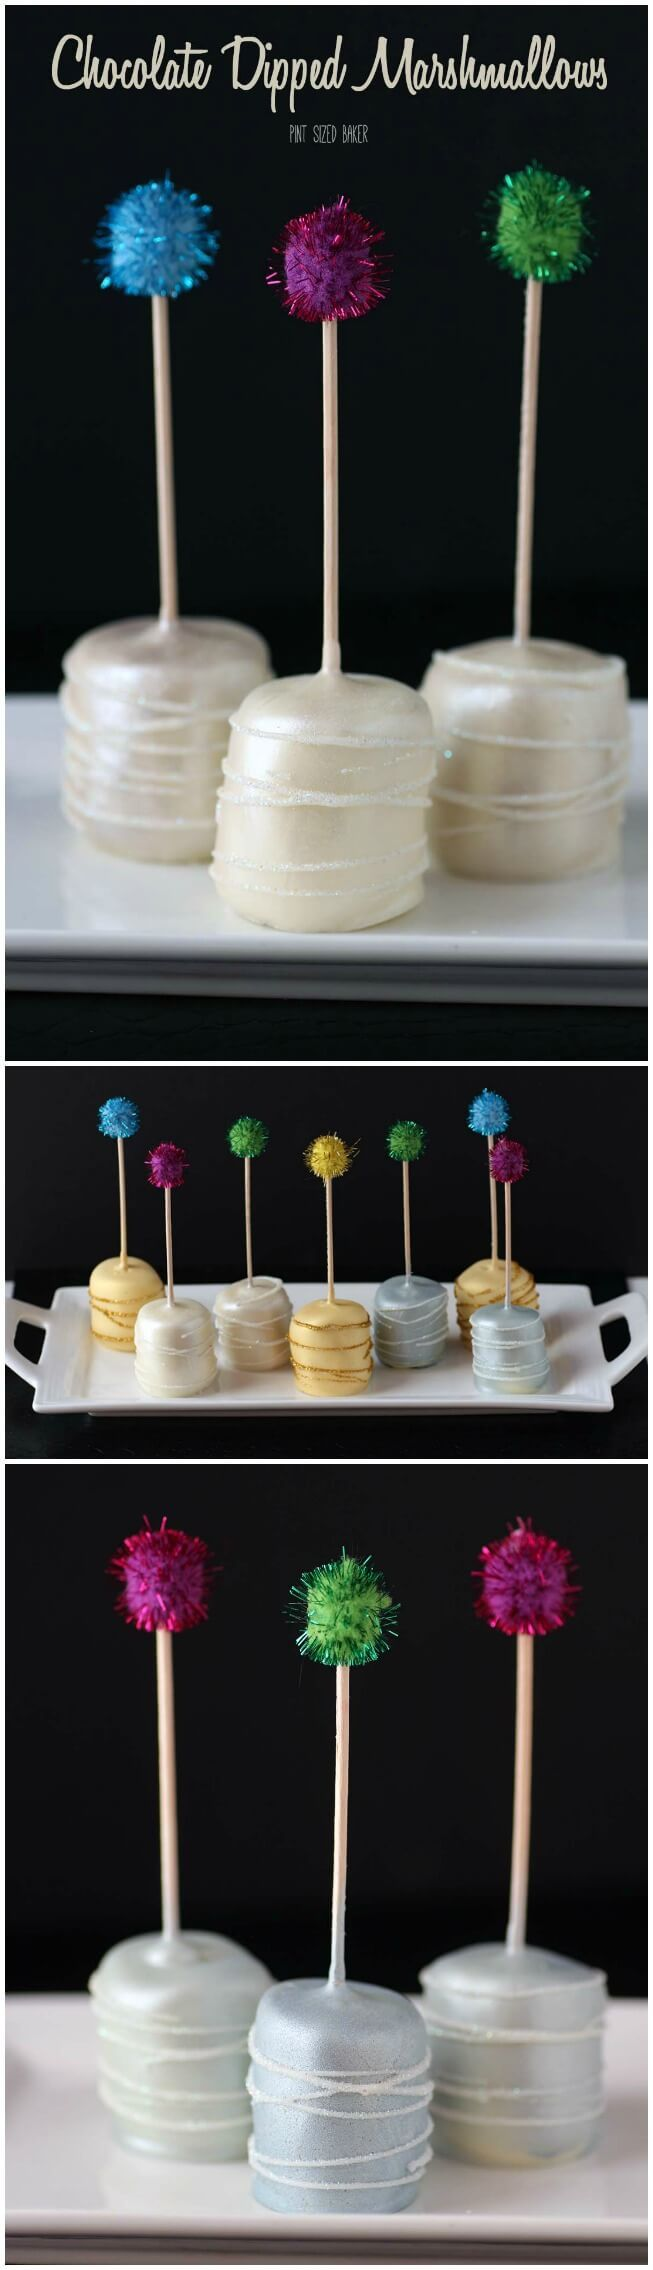 White Chocolate Dipped Marshmallows are sparkling for your New Years Party! Ring in the new year with some easy no-bake treats.